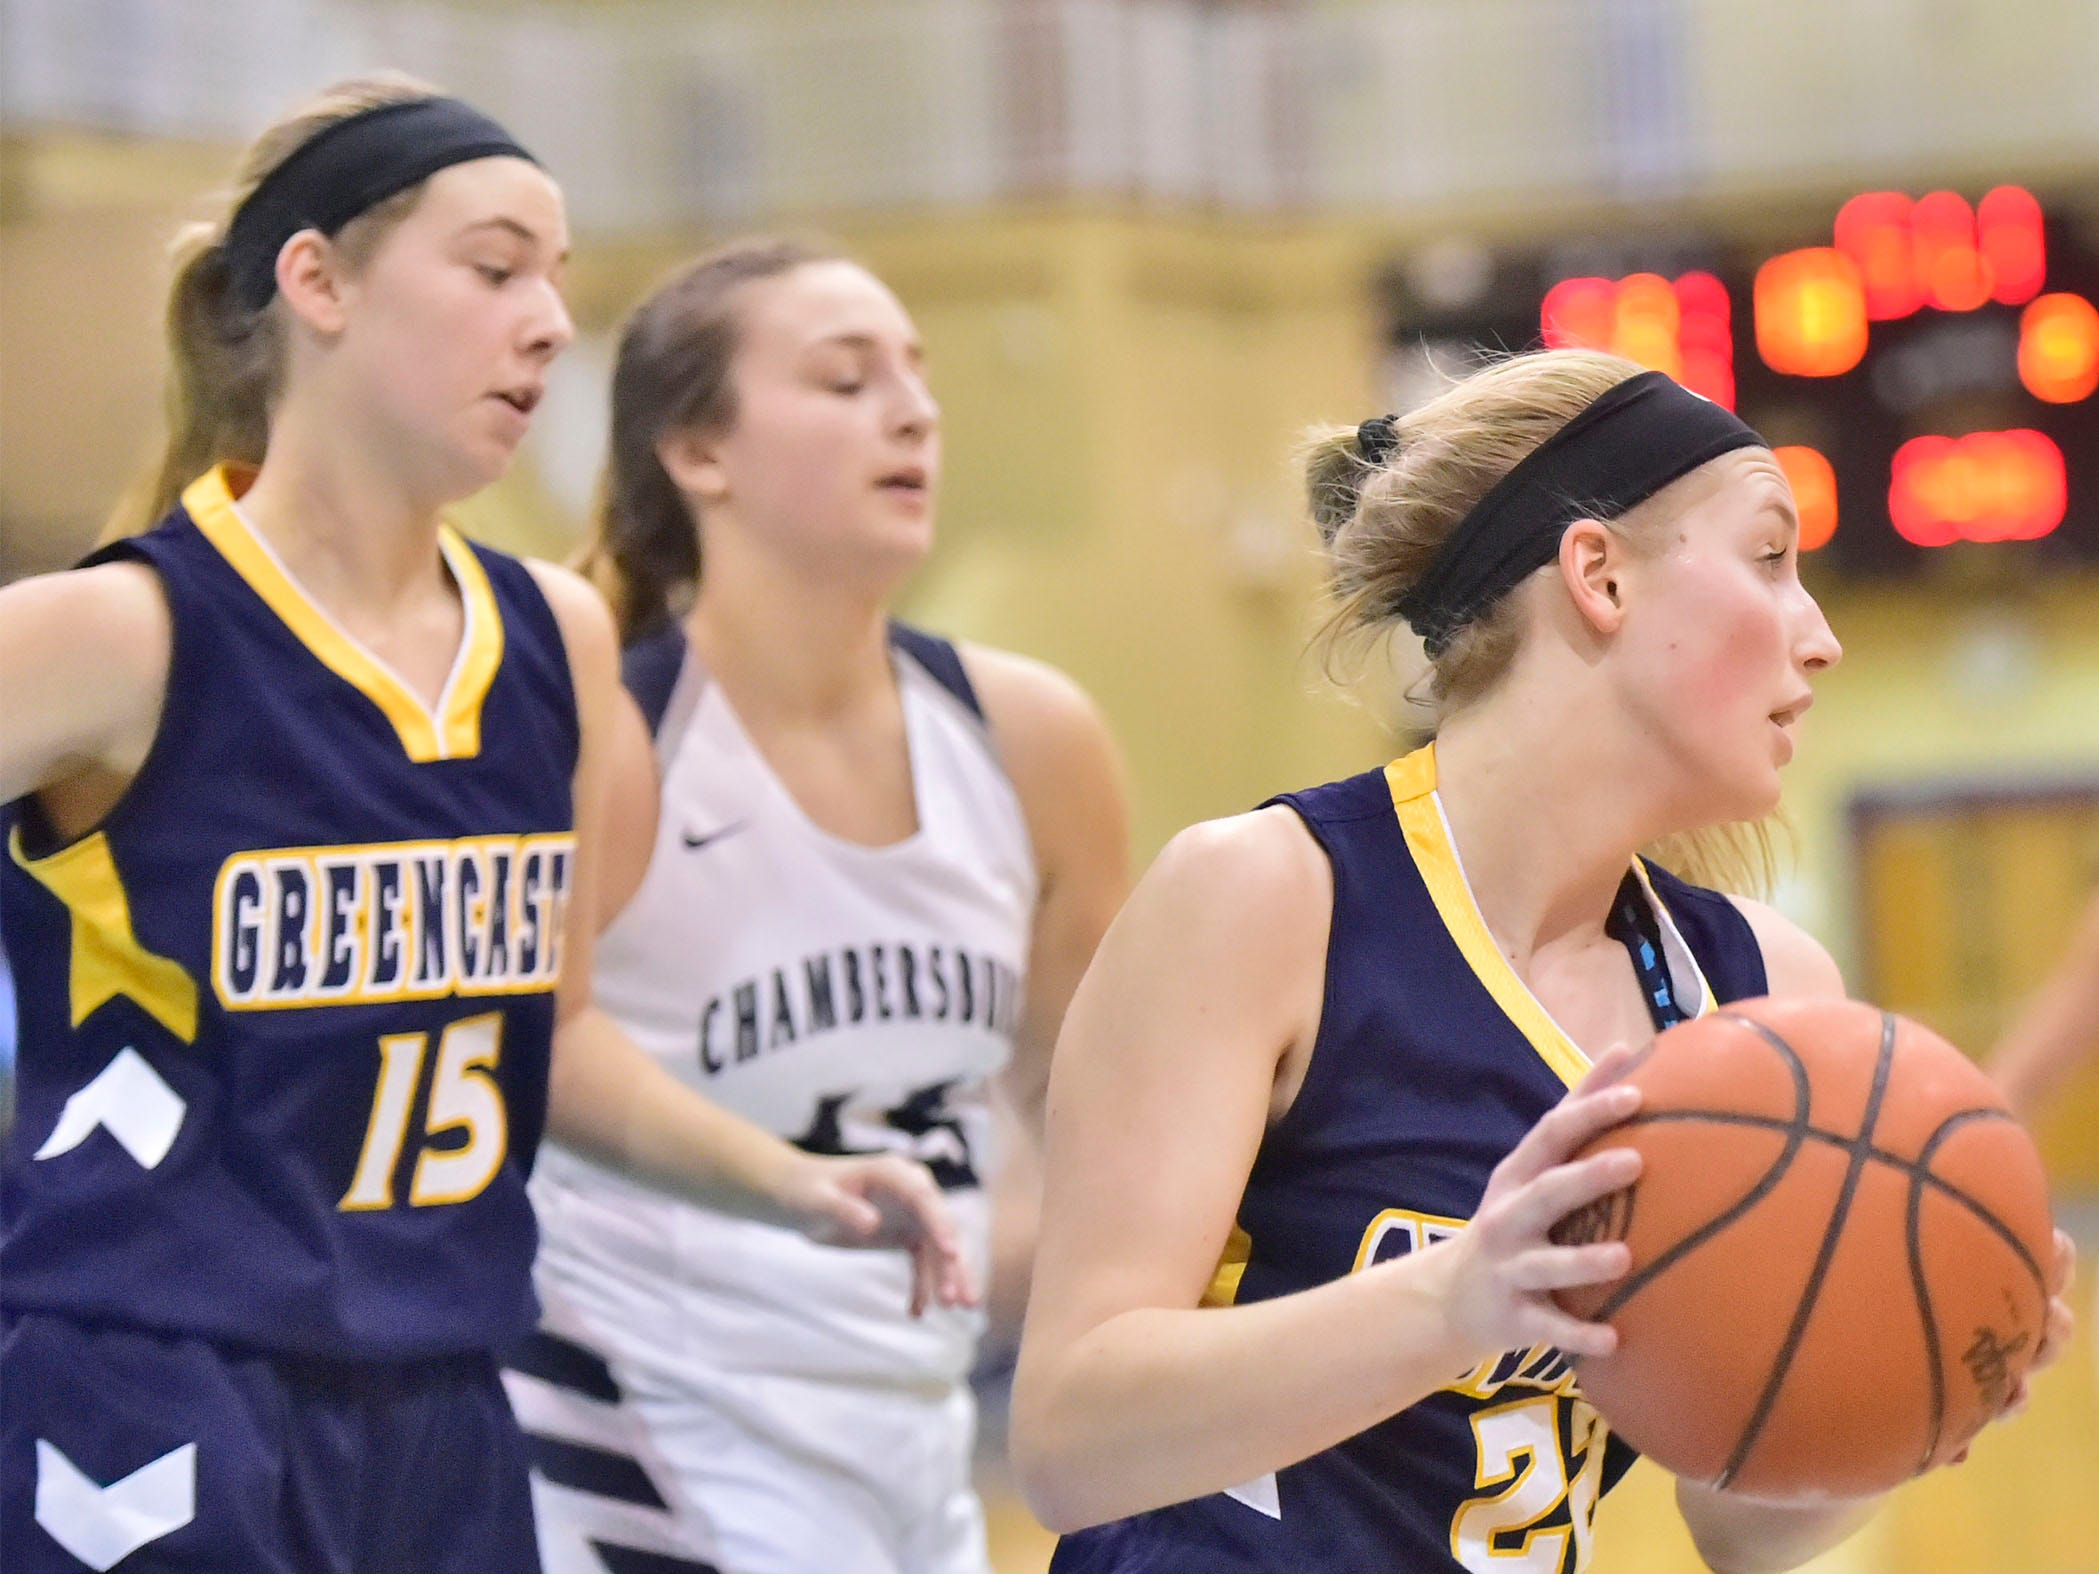 Greencastle's Lydia Crist controls the ball for the Lady Blue Devils. Chambersburg played Greencastle during the finals at Franklin County Tip-Off Tournament, Saturday, Dec. 8, 2018.